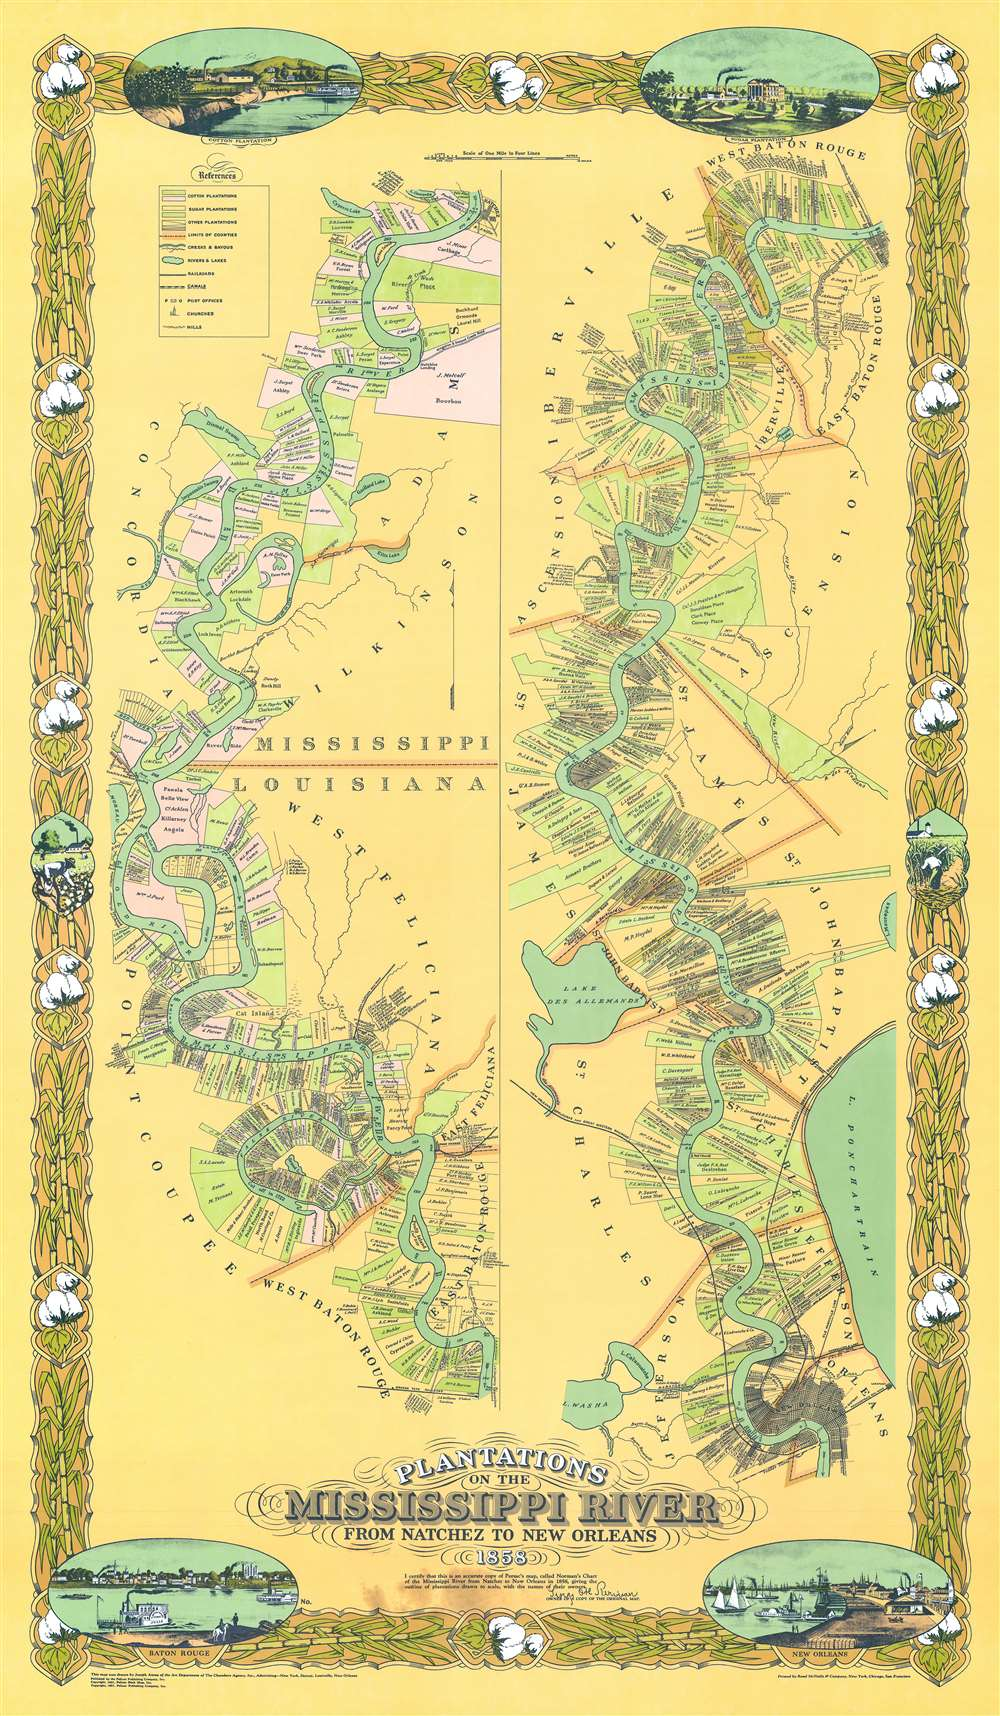 Plantations on the Mississippi River From Natchez to New Orleans 1858. - Main View